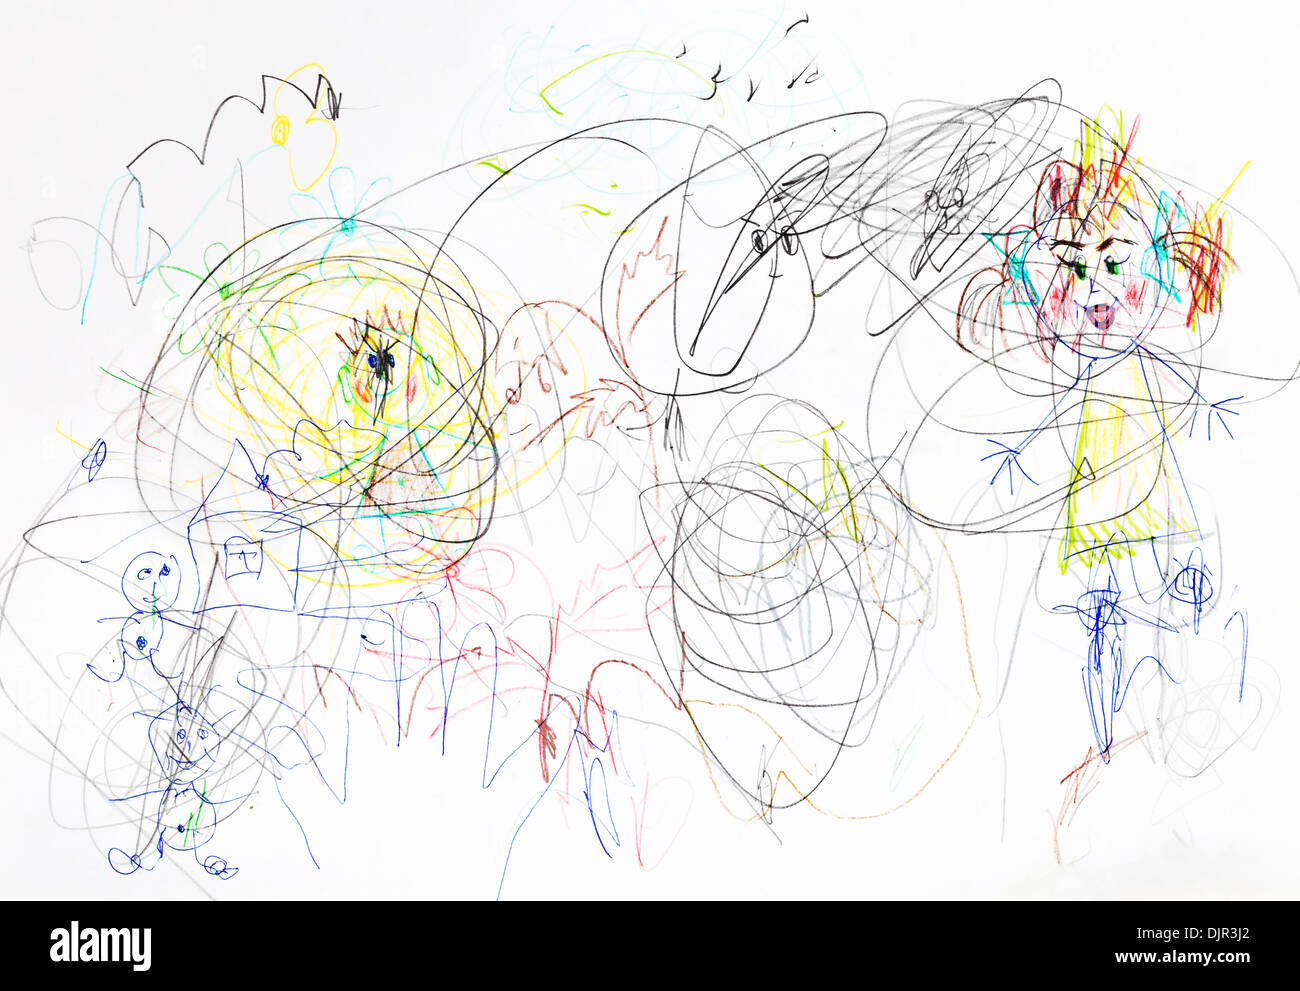 children drawing - chaos in family upbringing - Stock Image